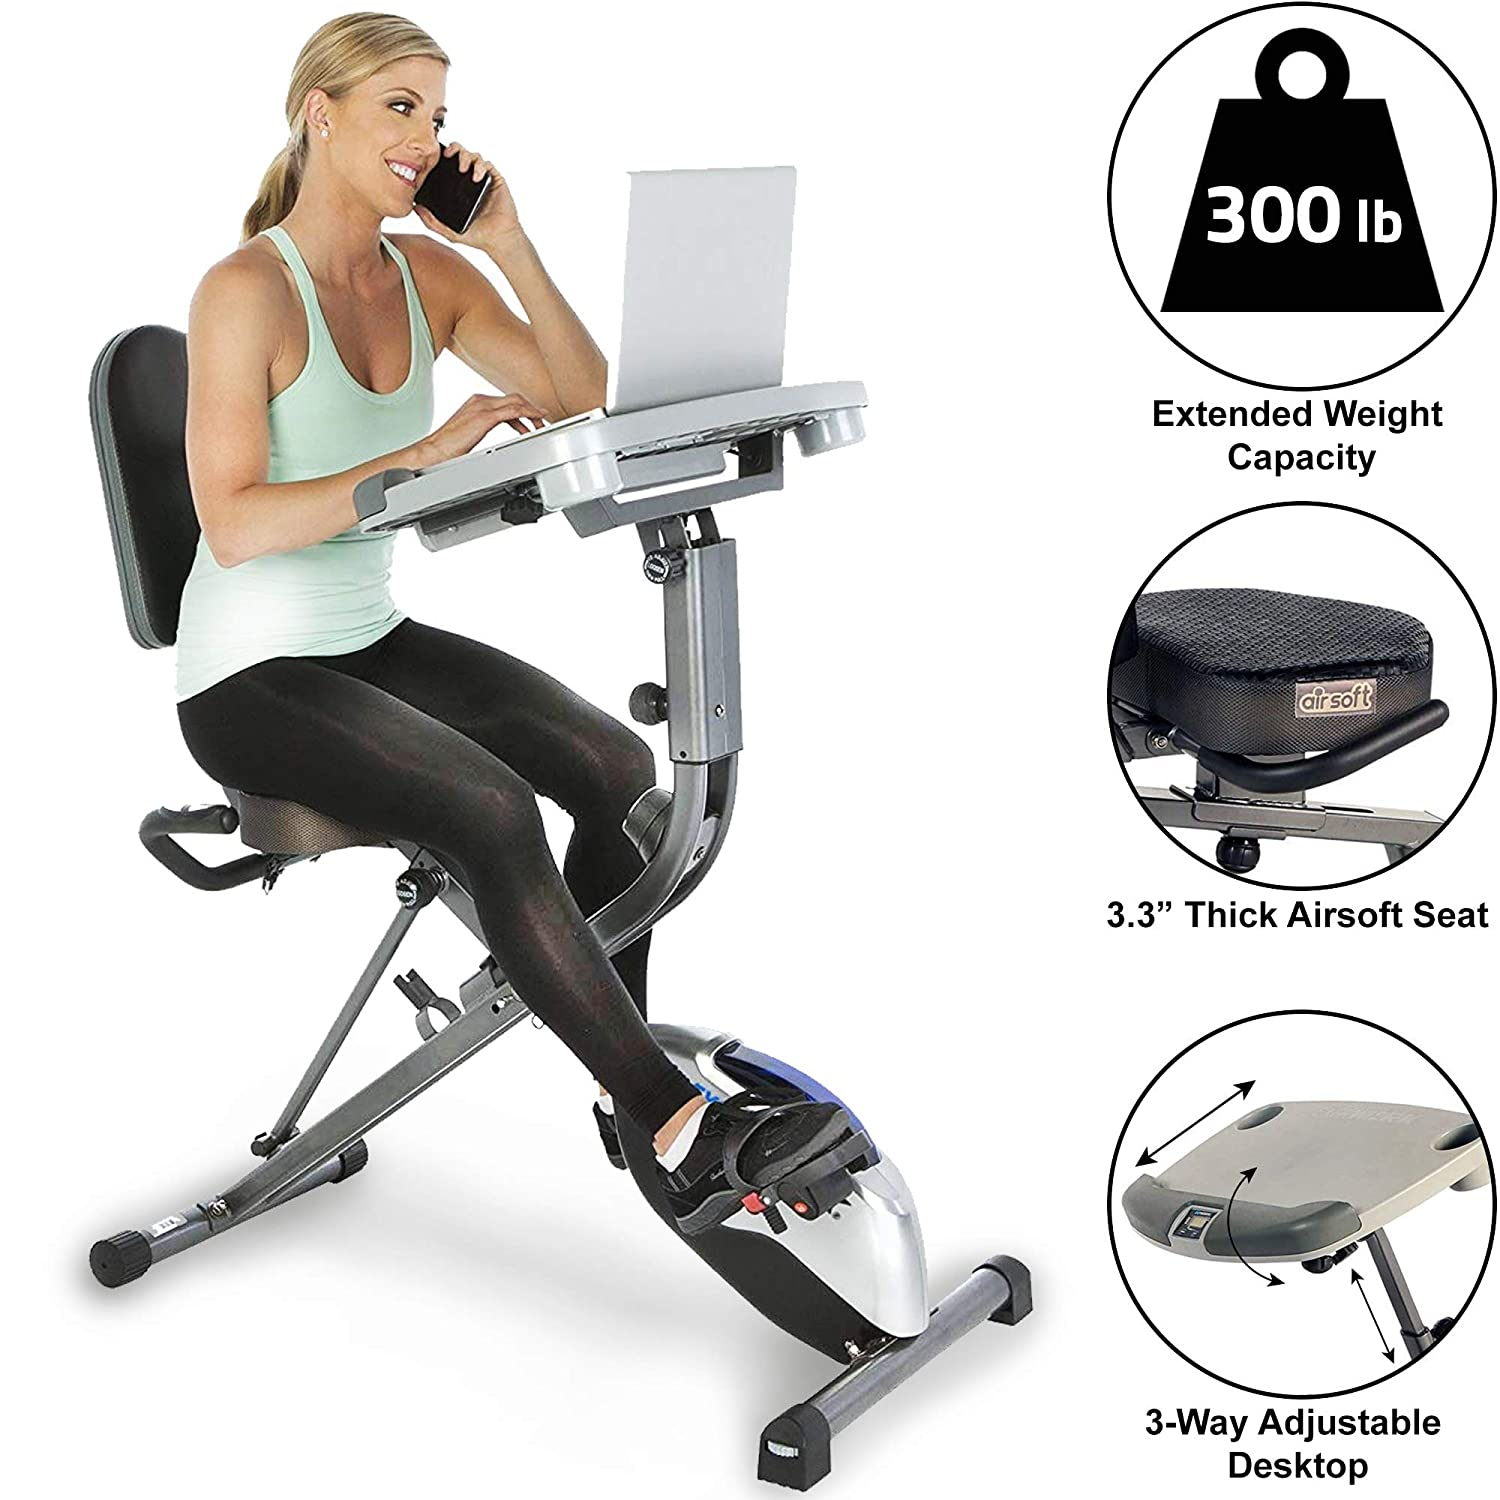 Top 10 Best Folding Exercise Bike Reviews 2020 5